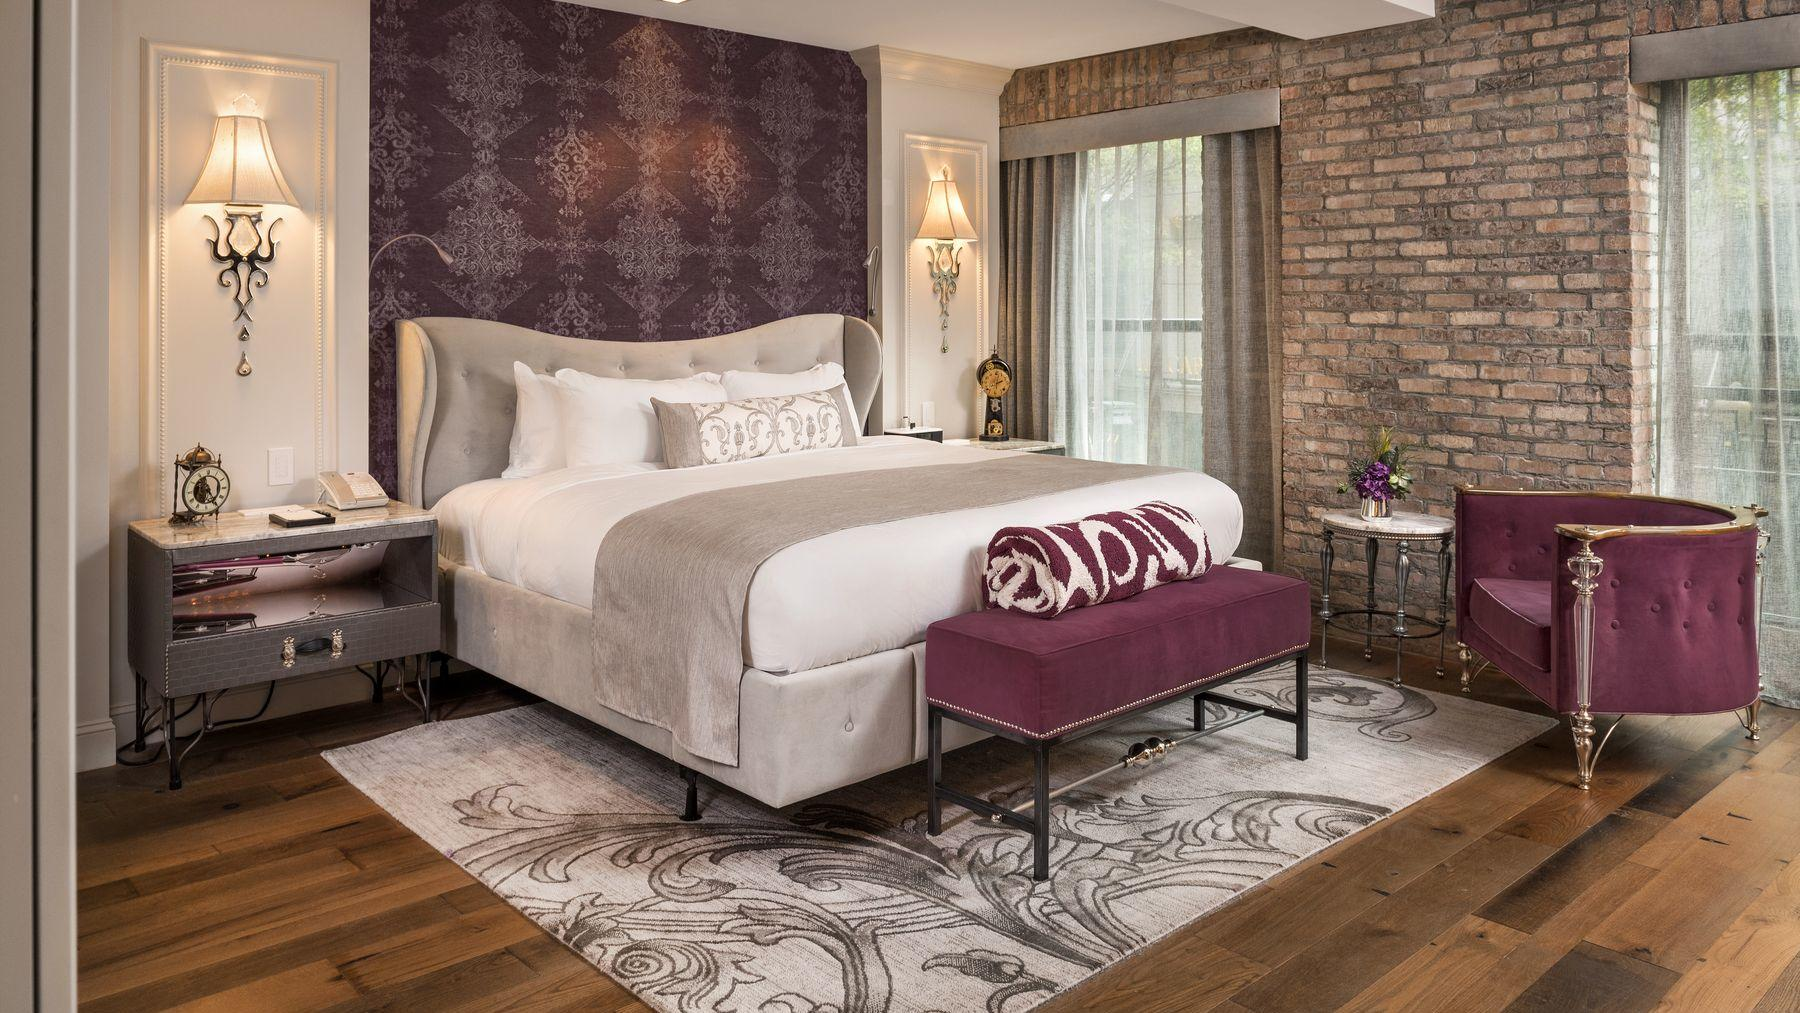 bed in cozy brick room with carpet and floral headboard